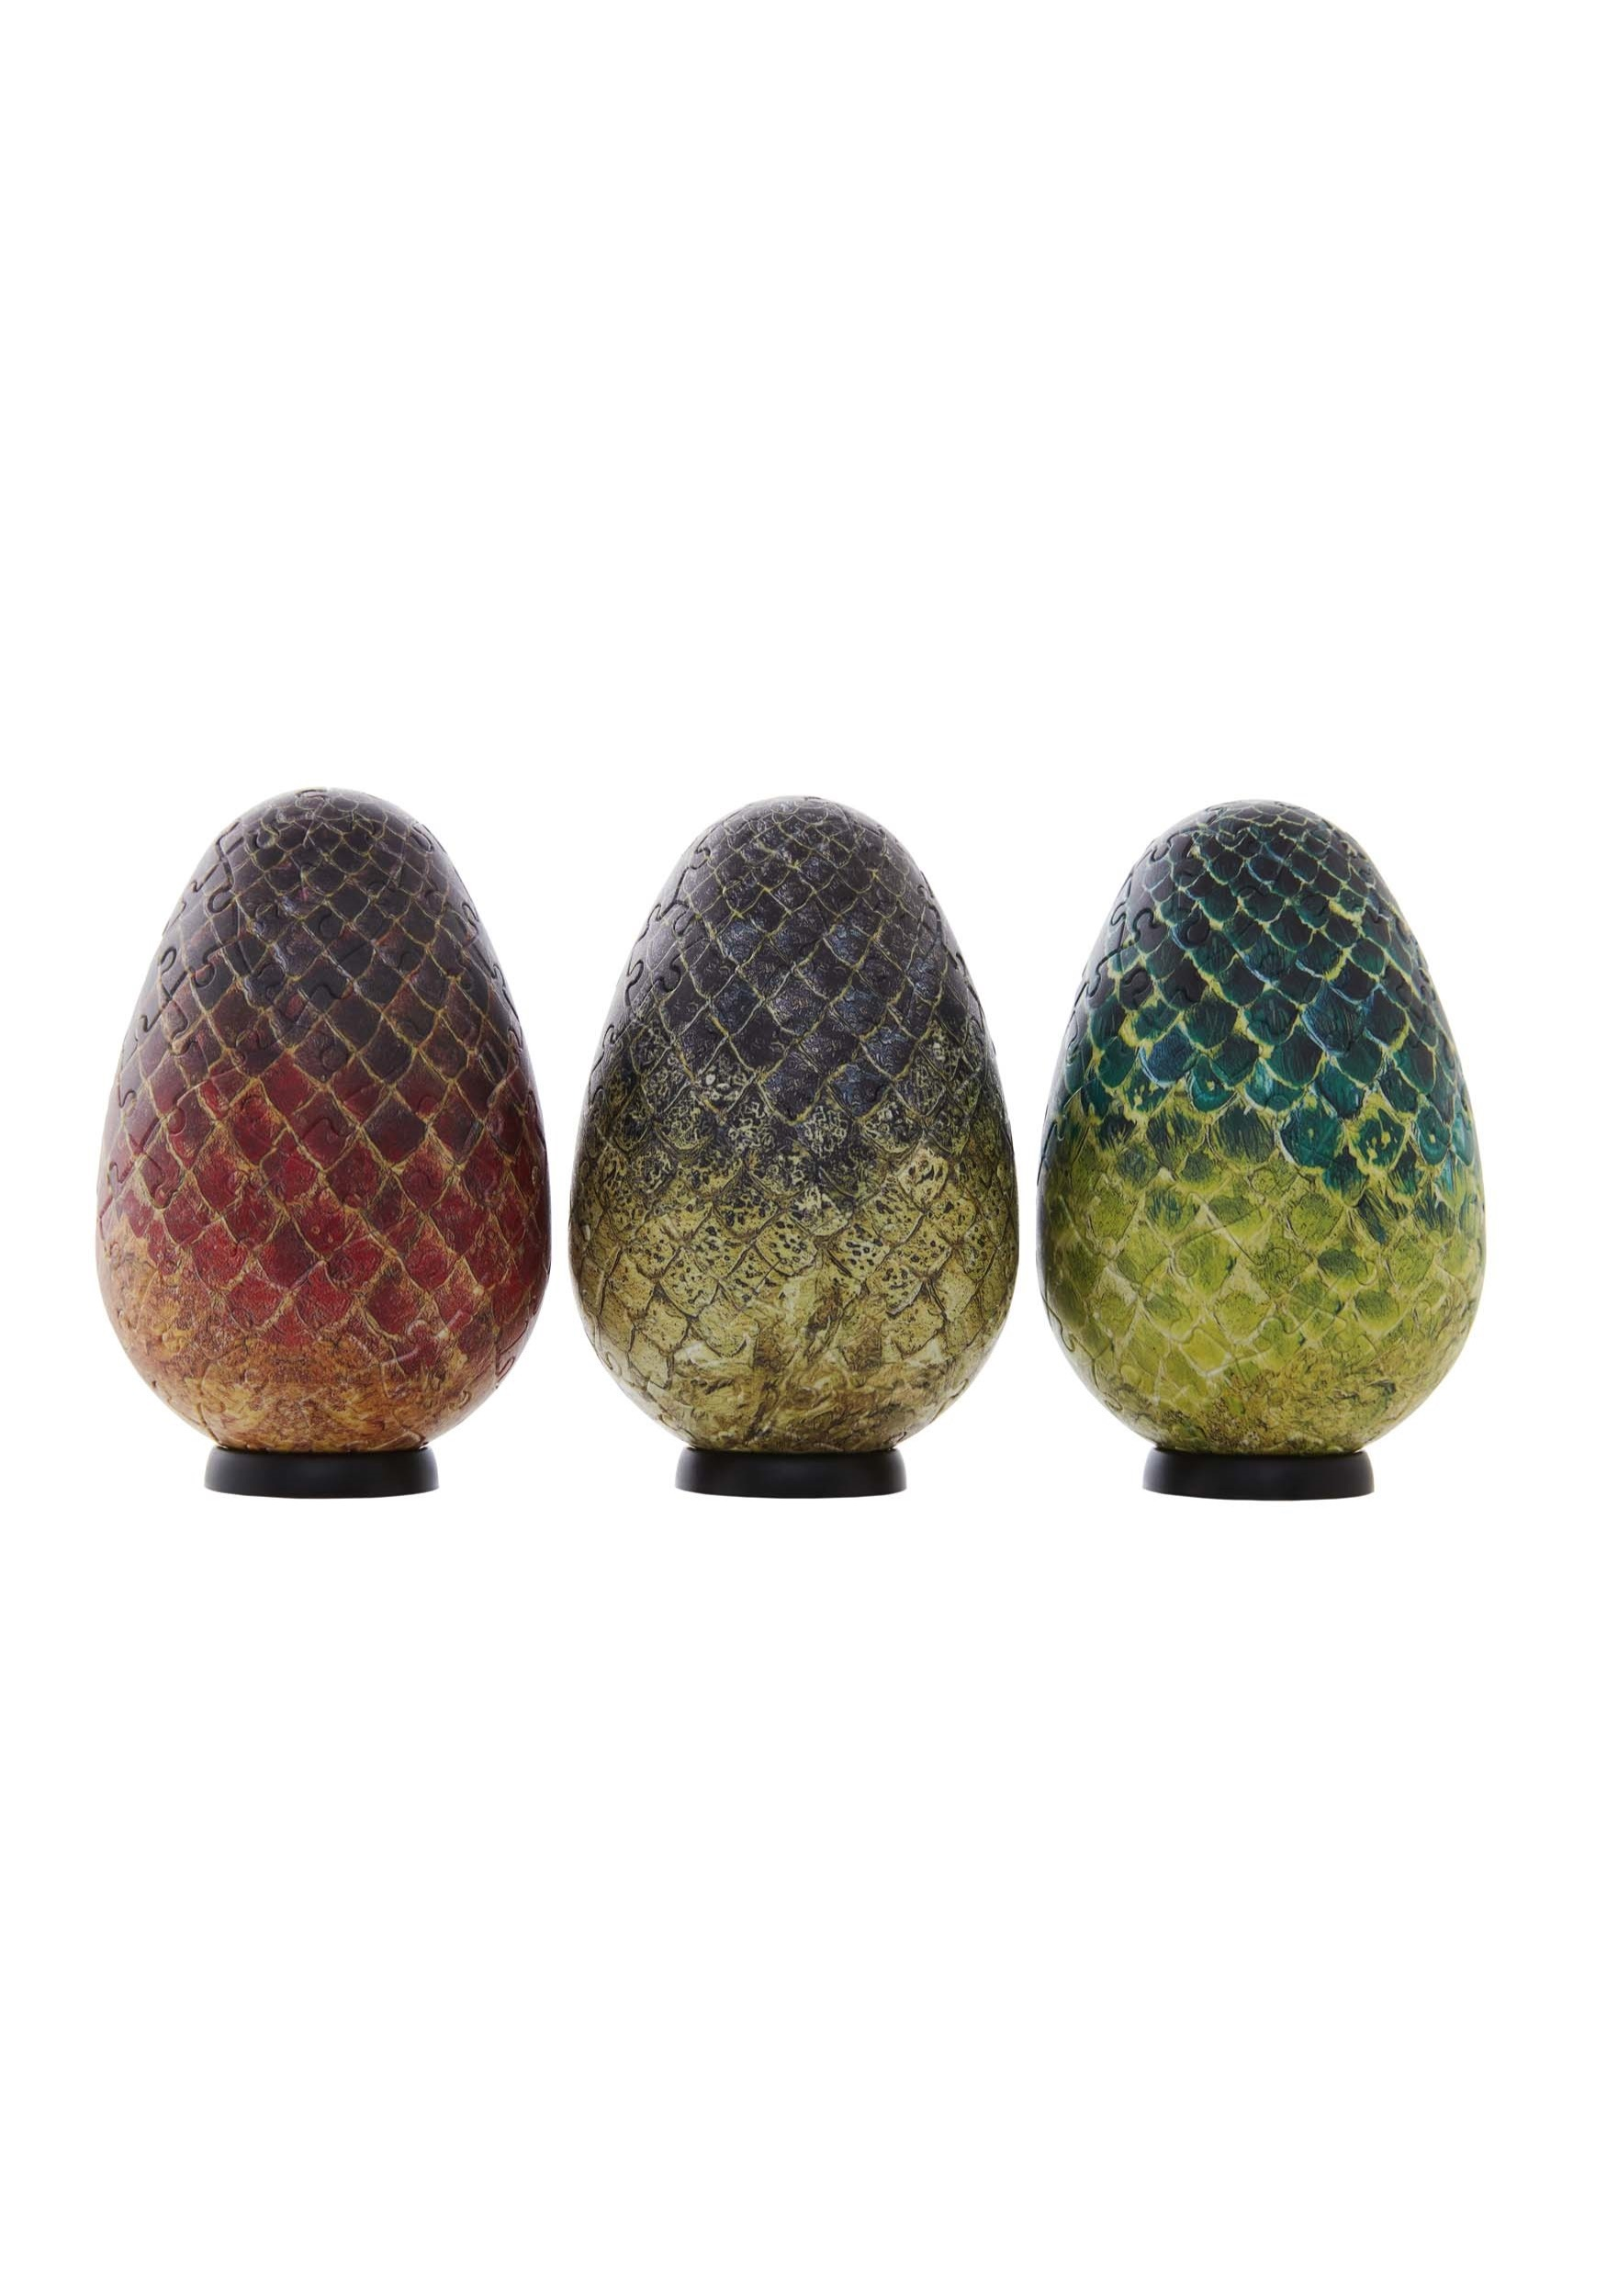 Game of Thrones Dragon Eggs 3D Puzzle Set FDC30009